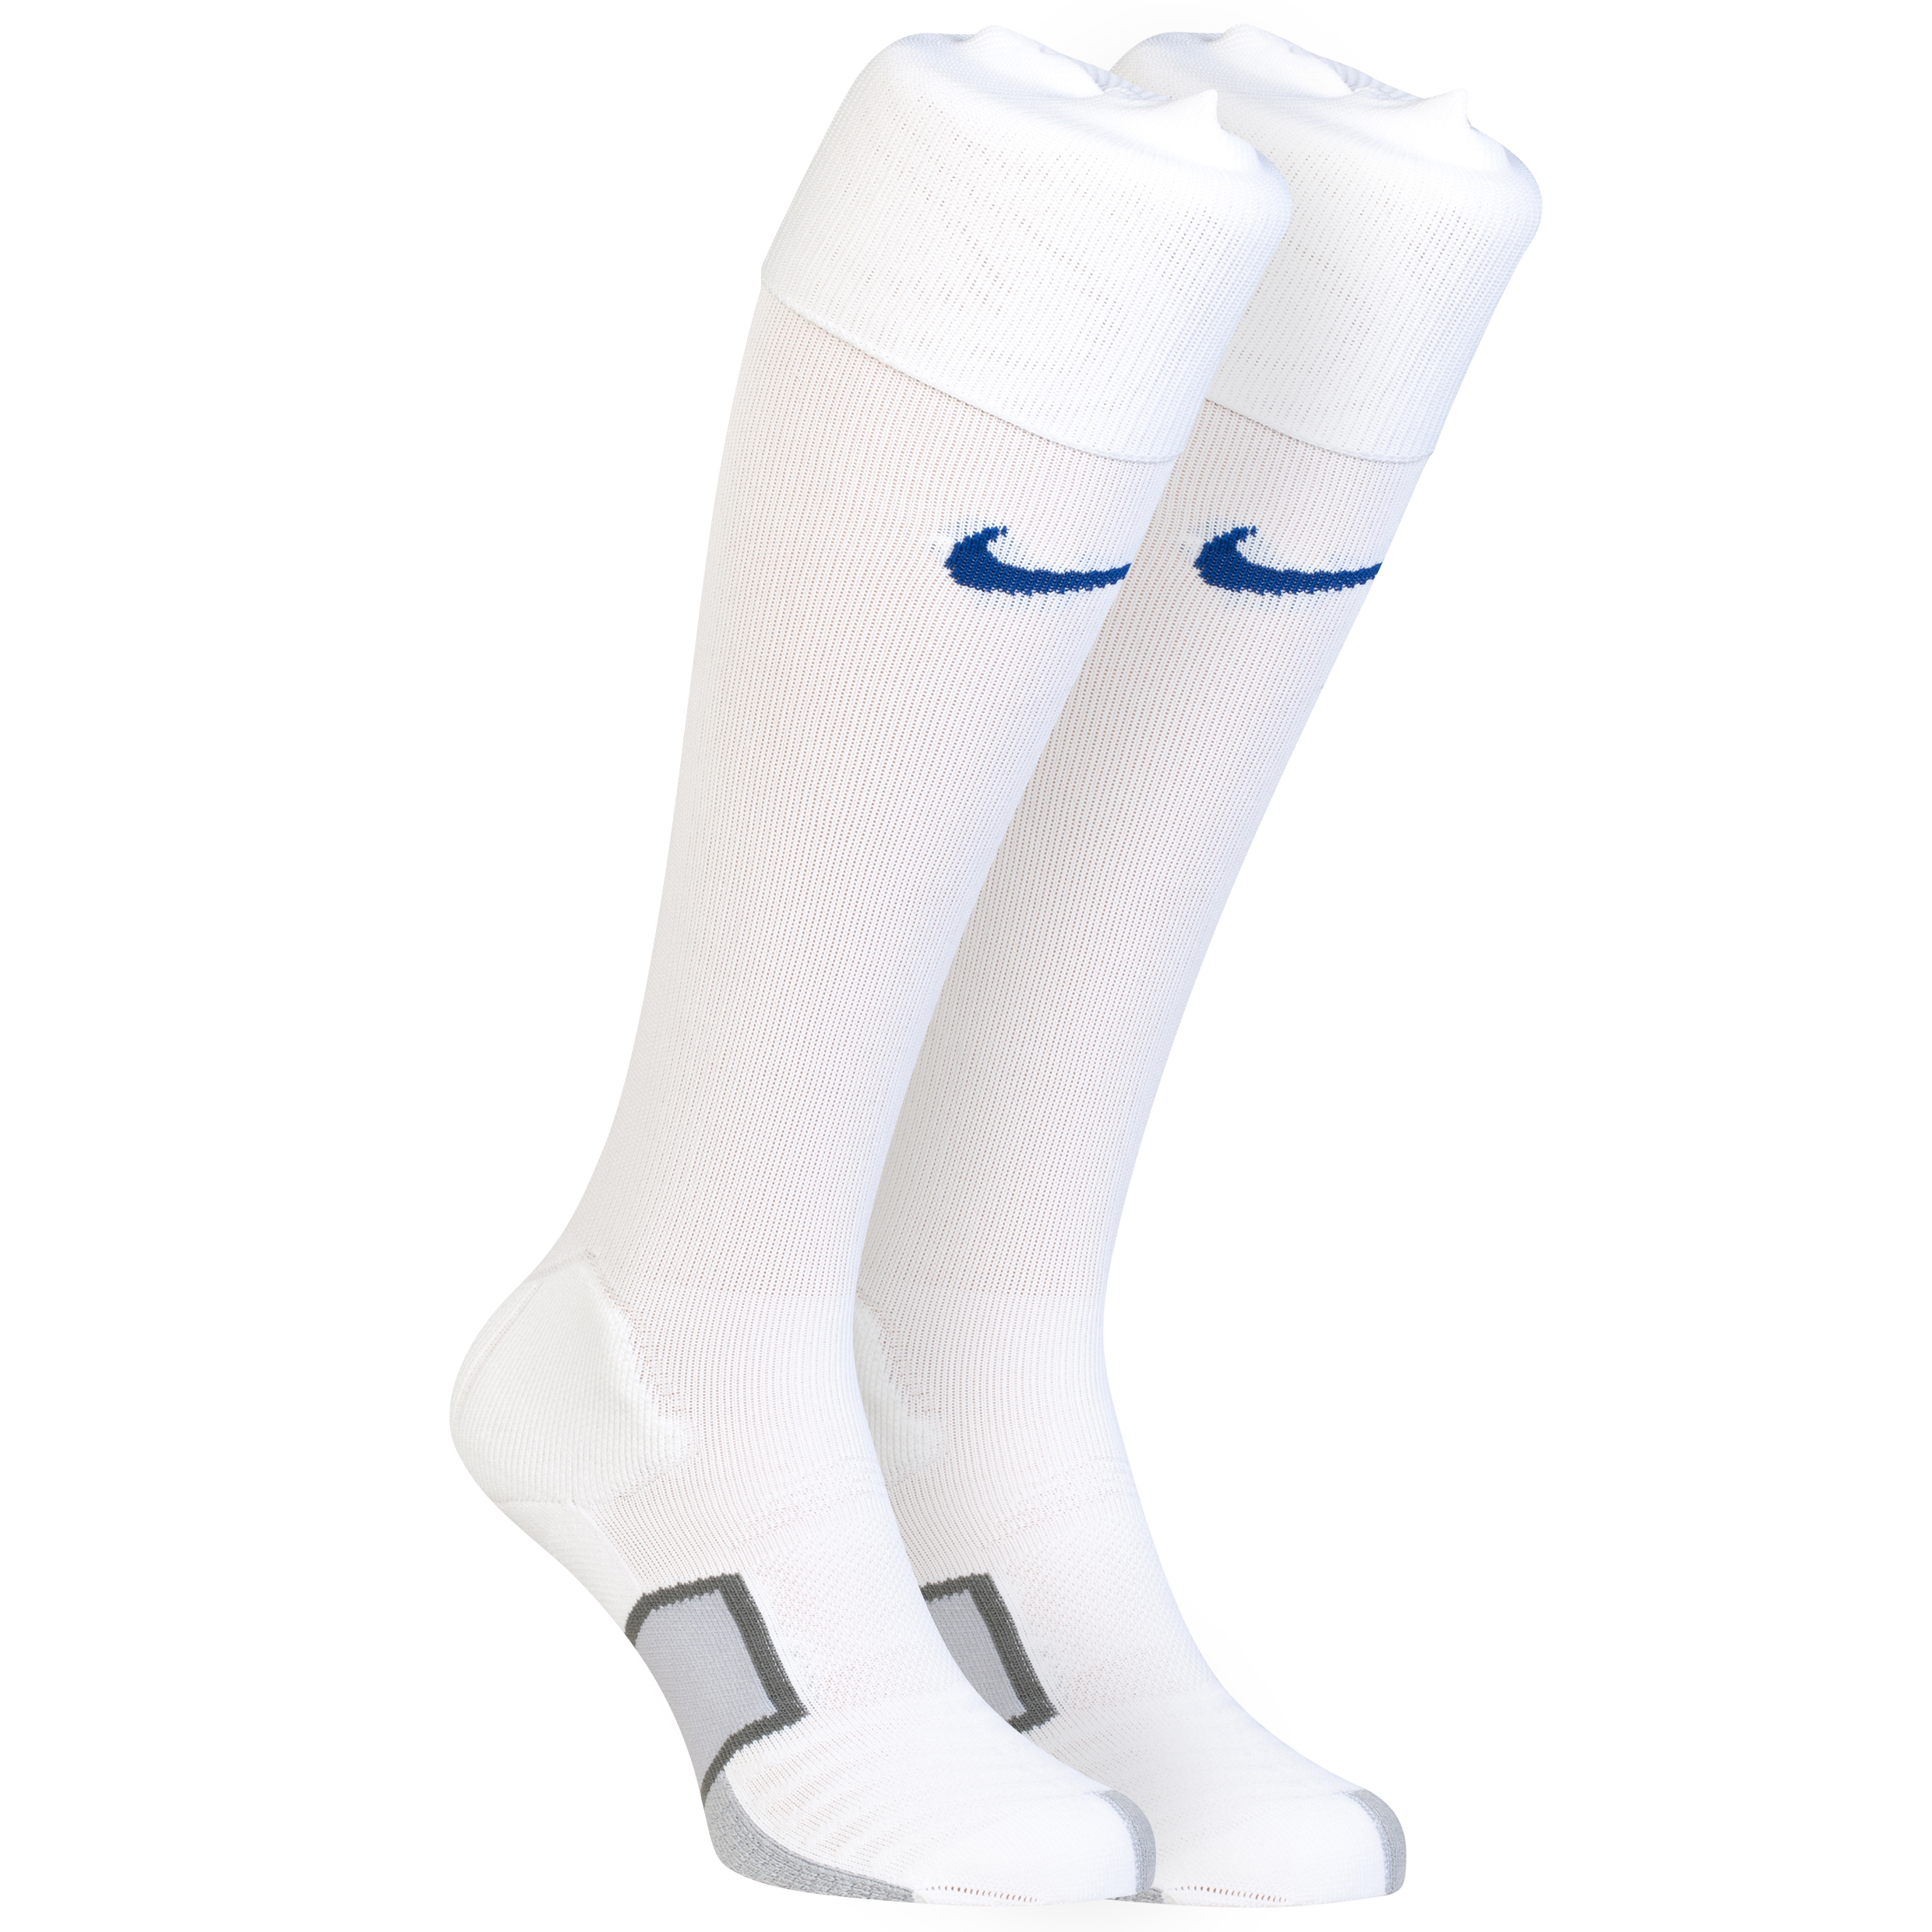 England Home Sock 2014/15 White